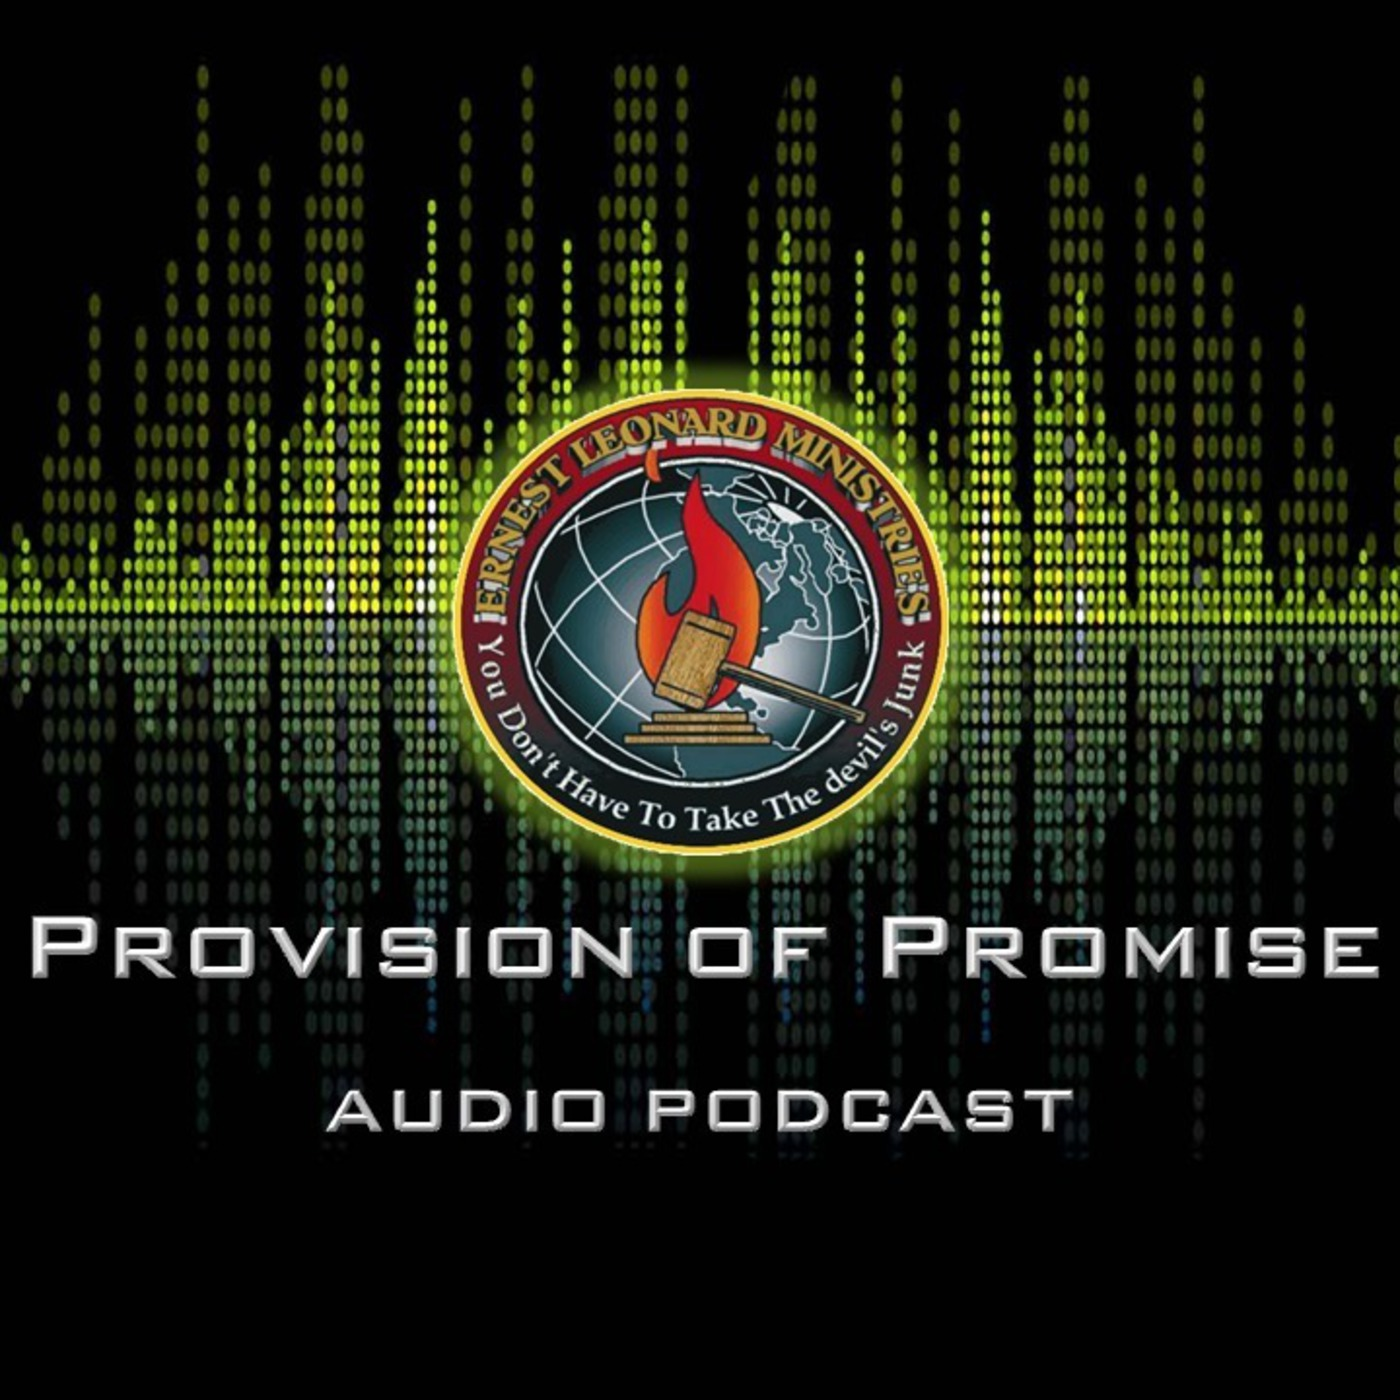 Provision of Promise Audio Podcast